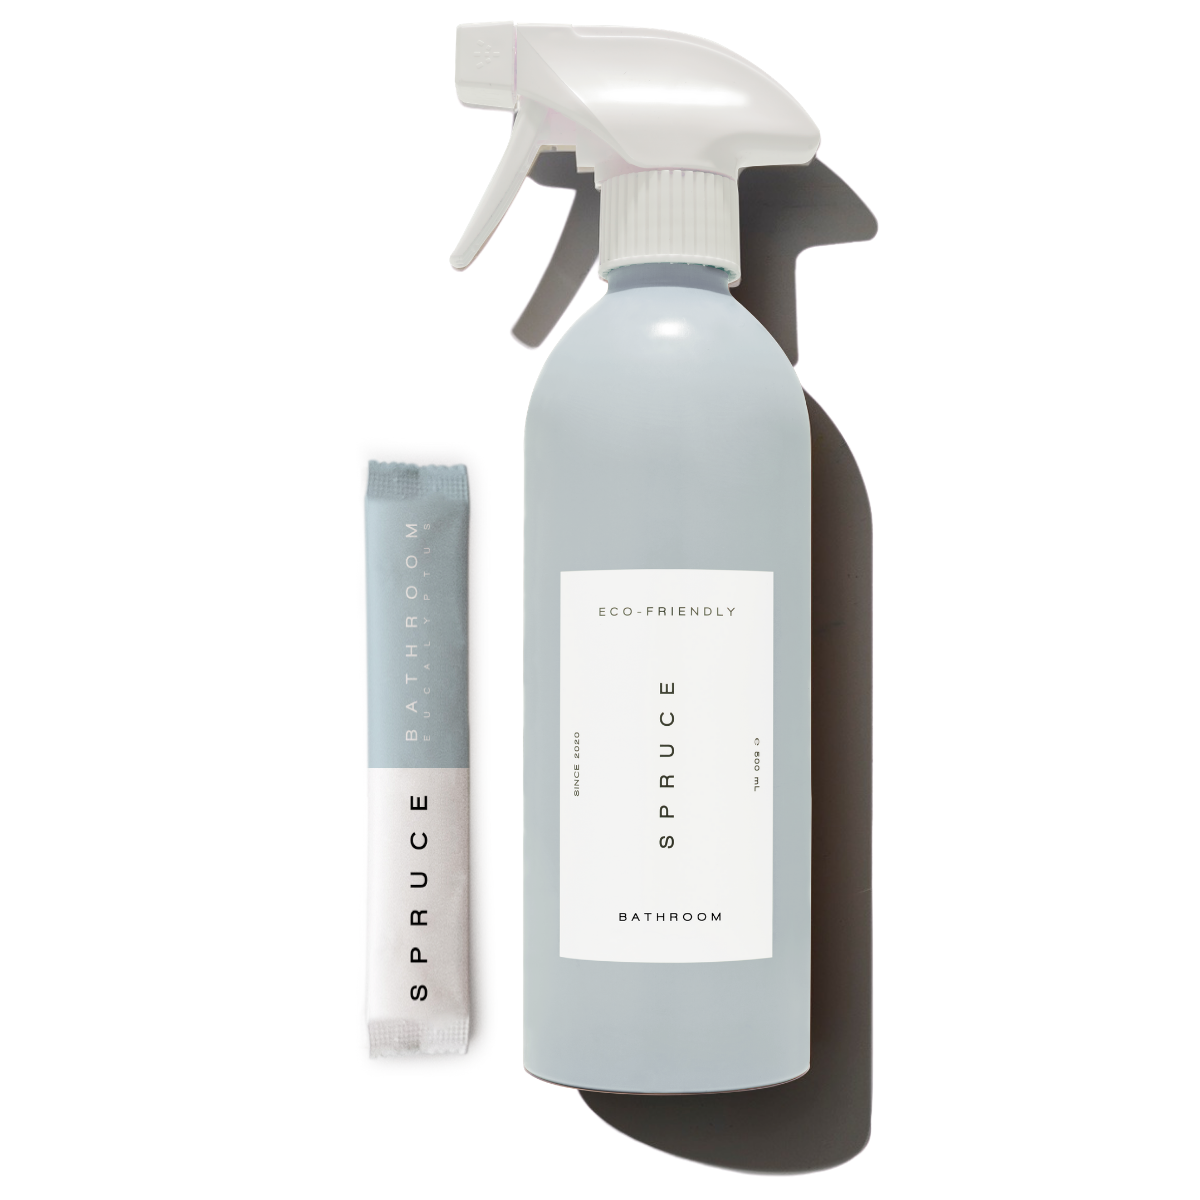 Spruce Eco-friendly Bathroom Cleaning Starter Kit is soap scum cleaner, shower cleaner, toilet cleaner with a plastic free bathroom refill sachet pack and refillable aluminium bottle. Just add tap water at home